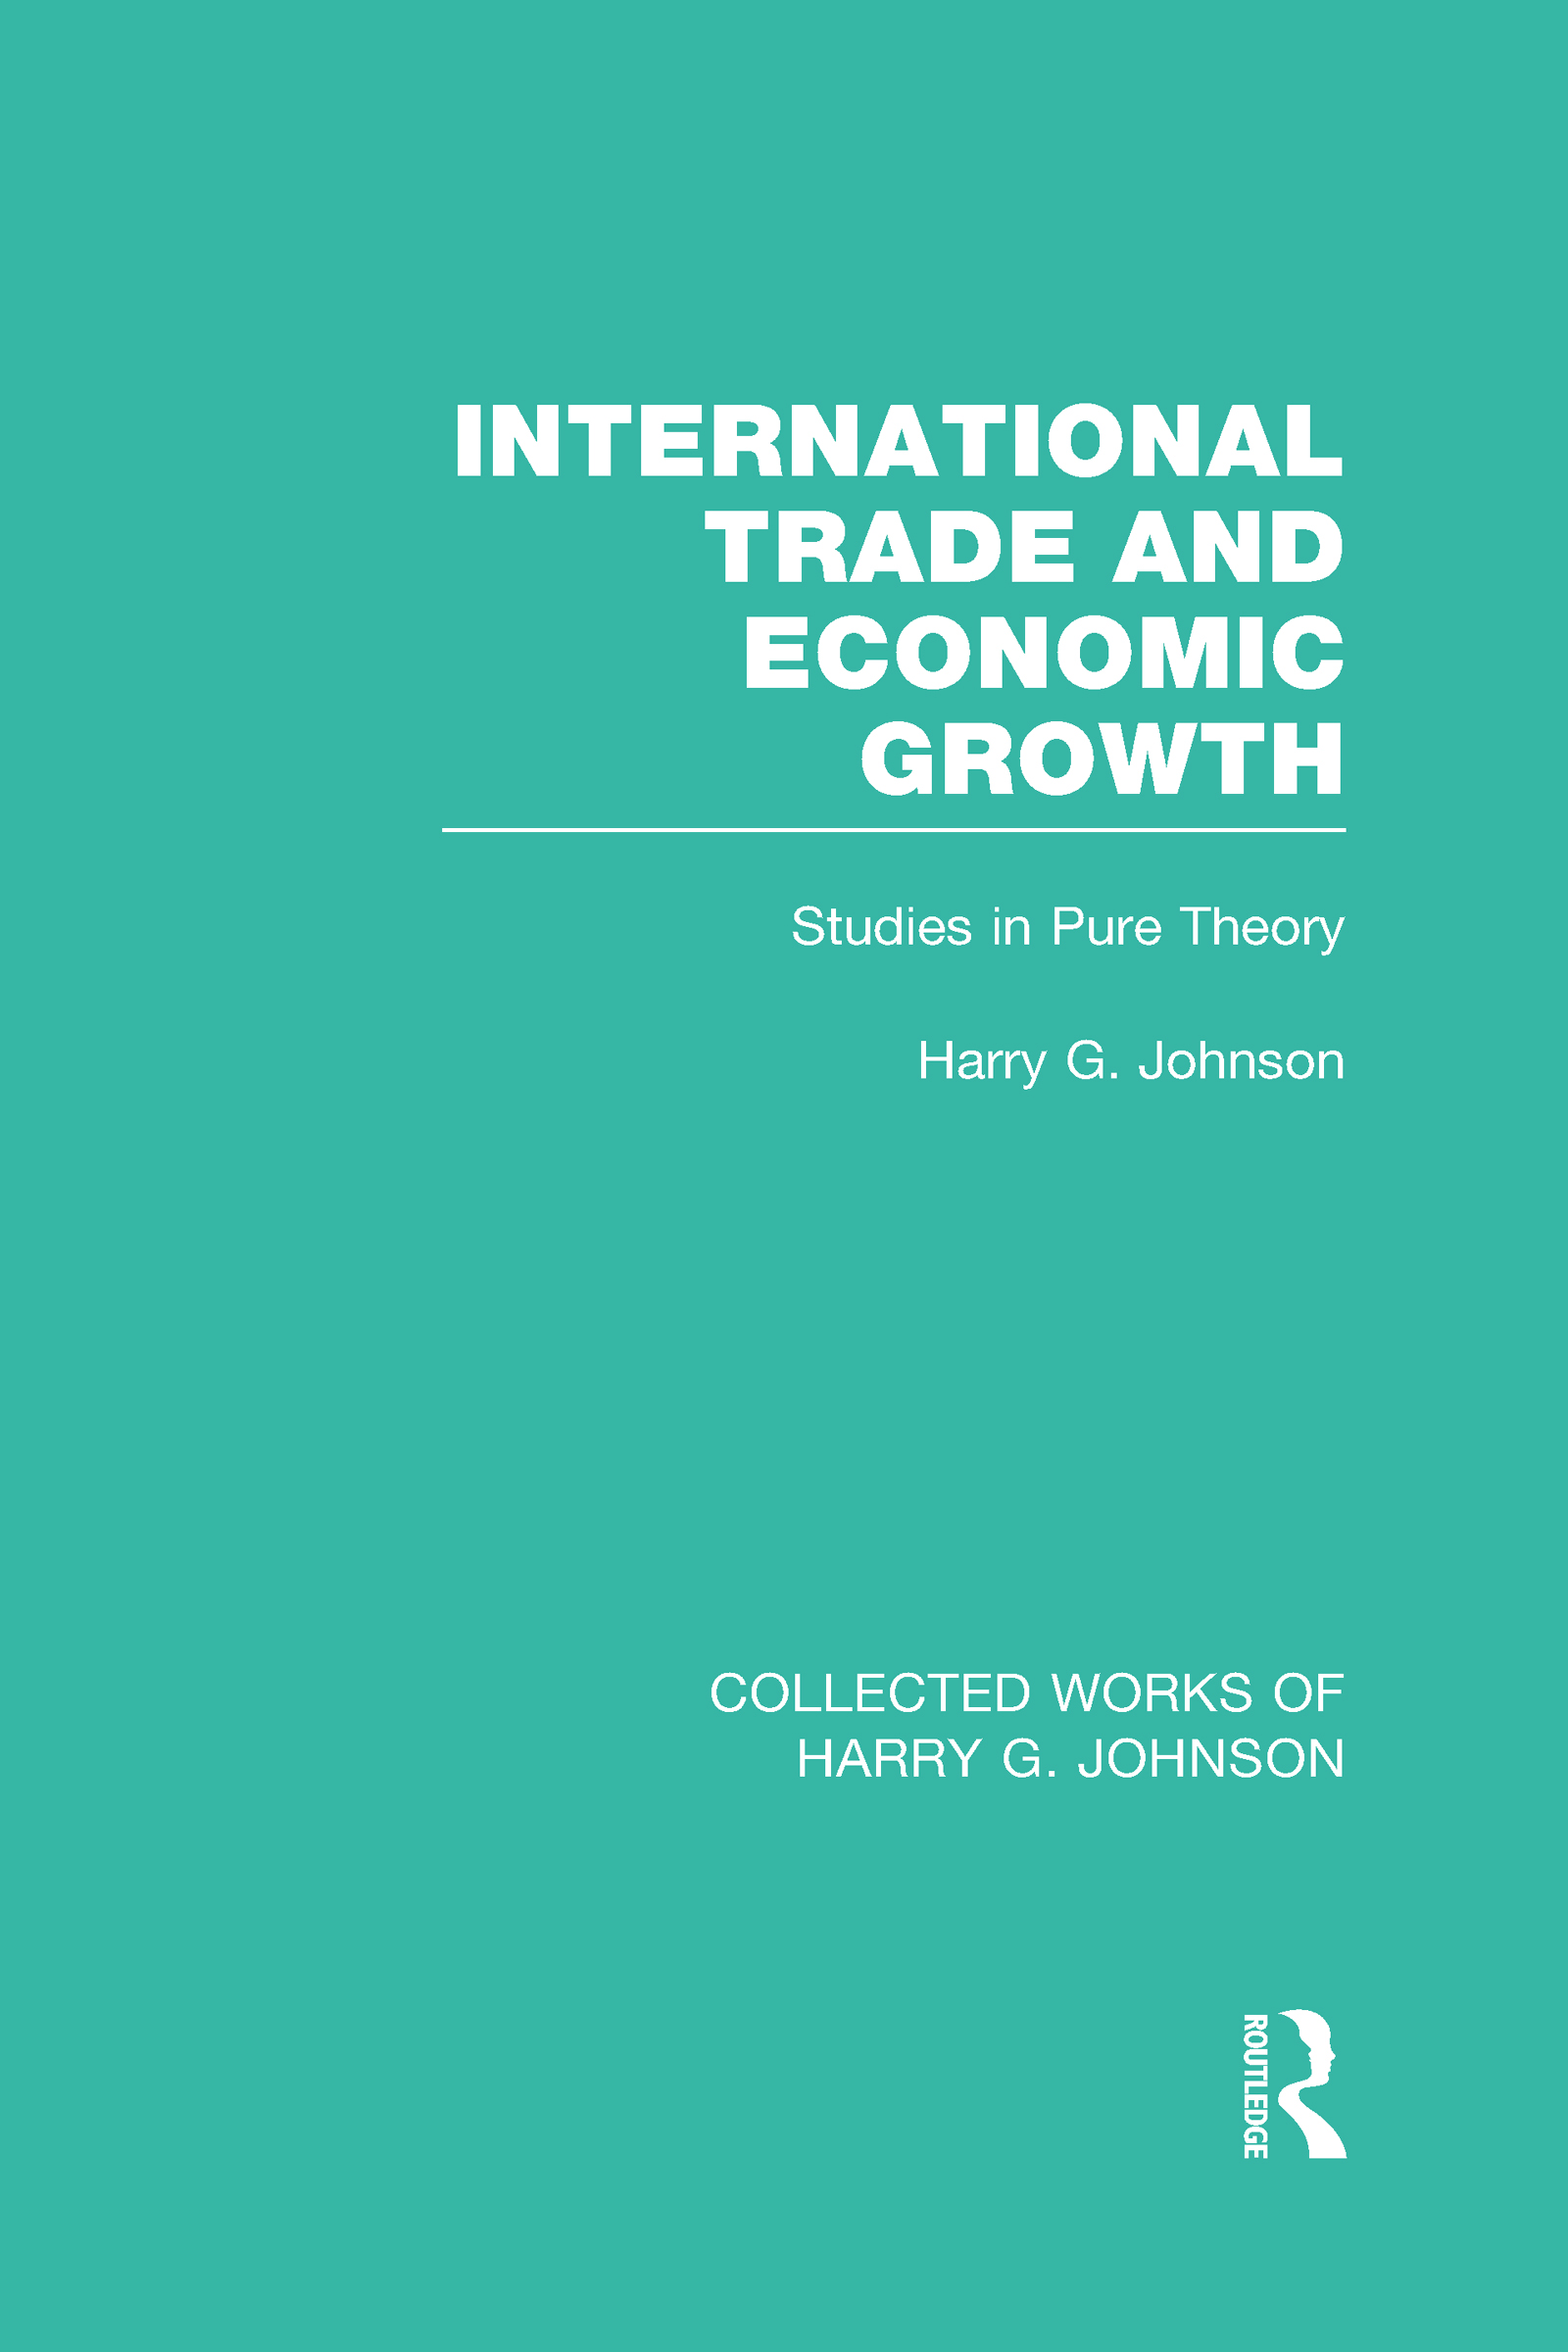 International Trade and Economic Growth (Collected Works of Harry Johnson): Studies in Pure Theory book cover